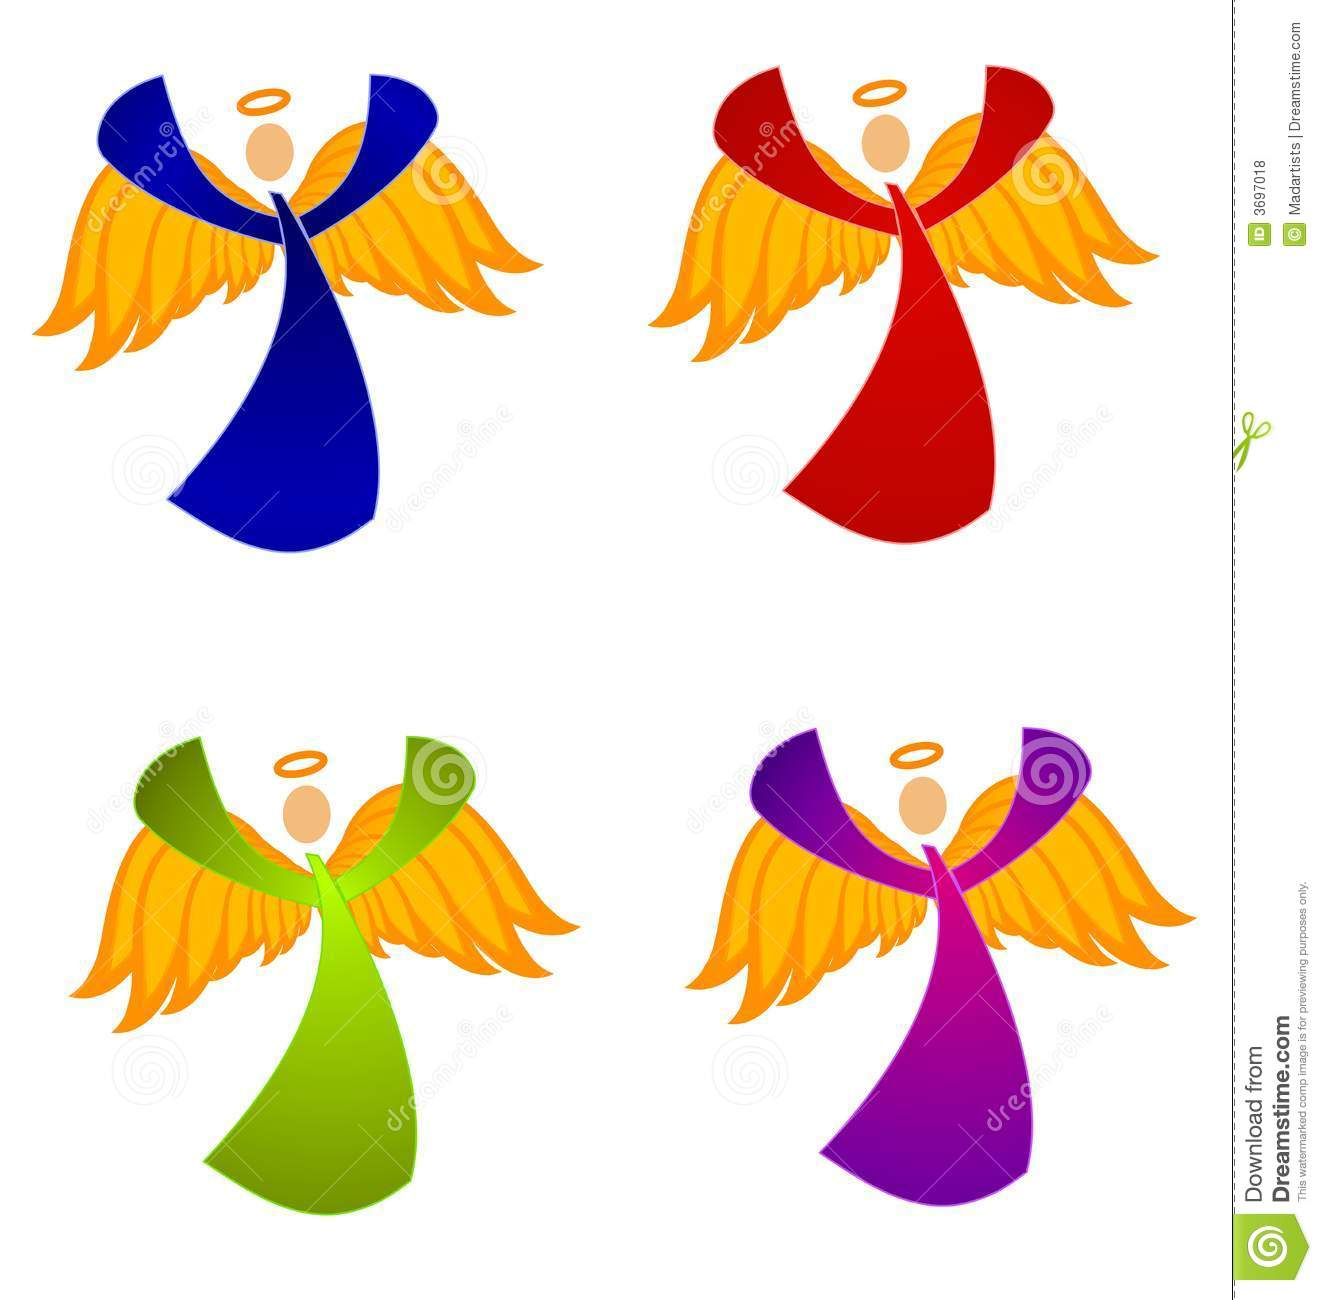 displaying 20 gt images for christmas angel clipart